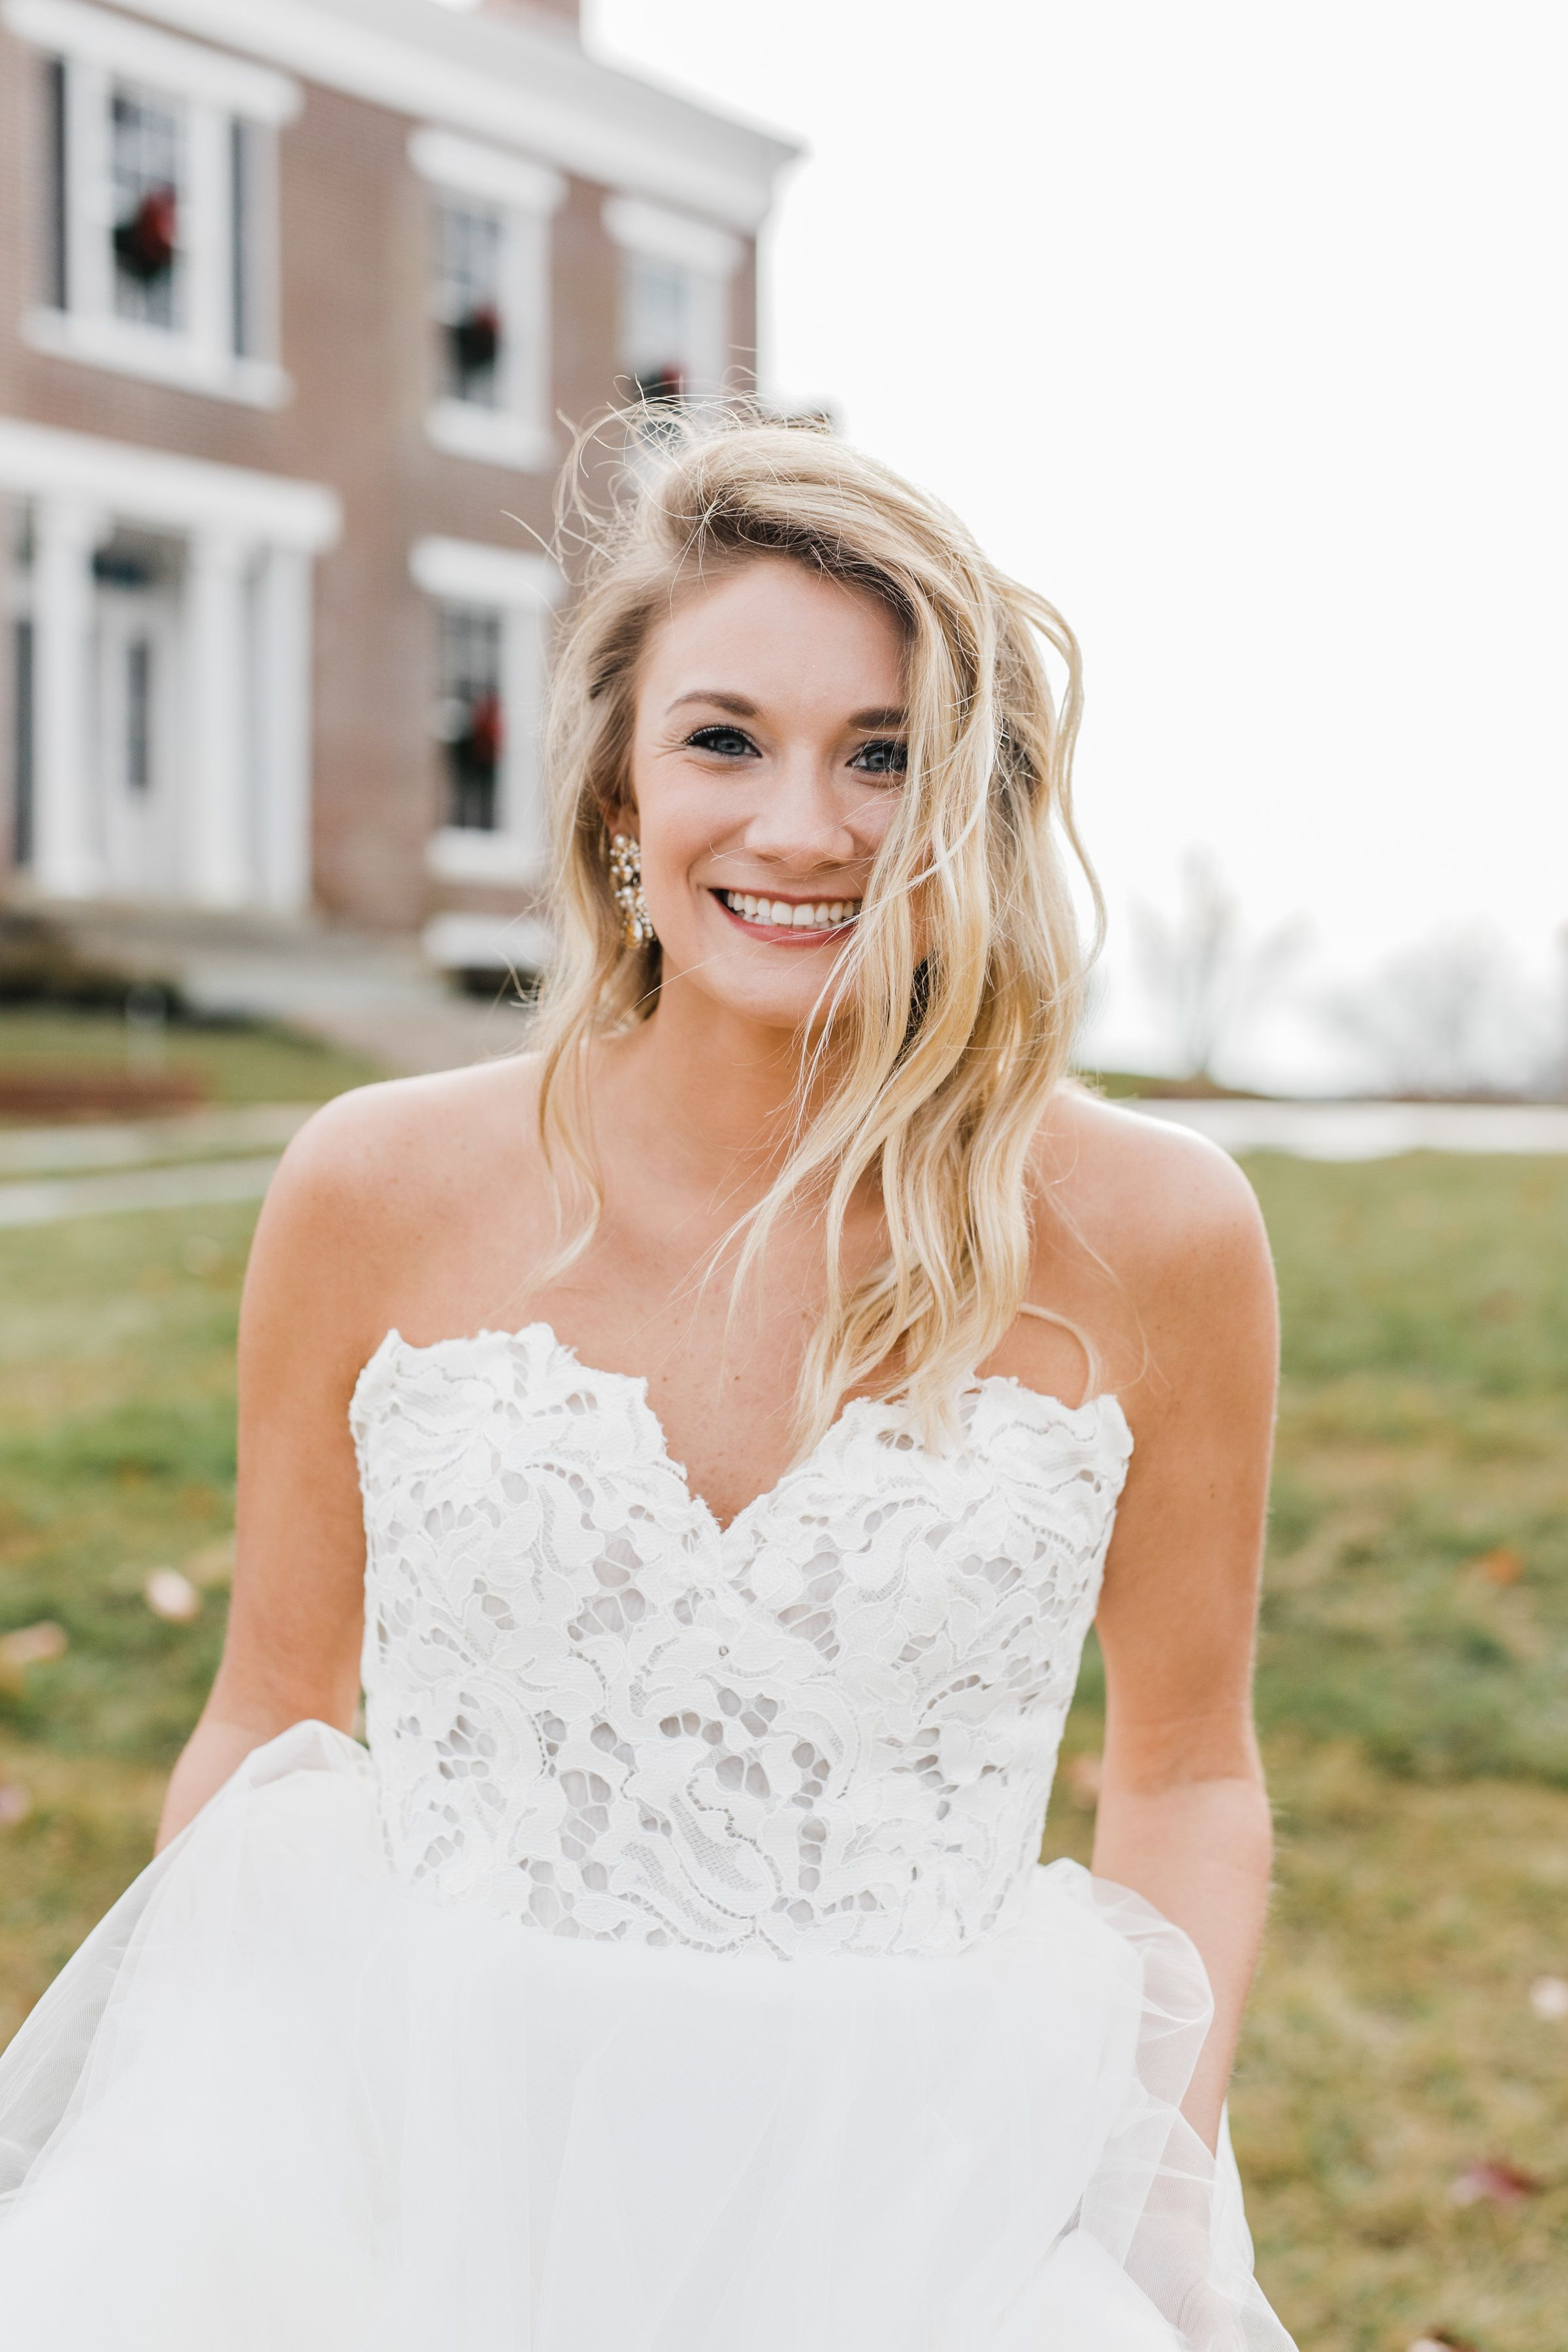 2018 Bride At Mustard Seed Hill Kentucky Gown Hayley Paige Twirl Lexington Photographer Malicote Photography Wedding Dresses 2017 Bridal Bridal [ 3600 x 2400 Pixel ]